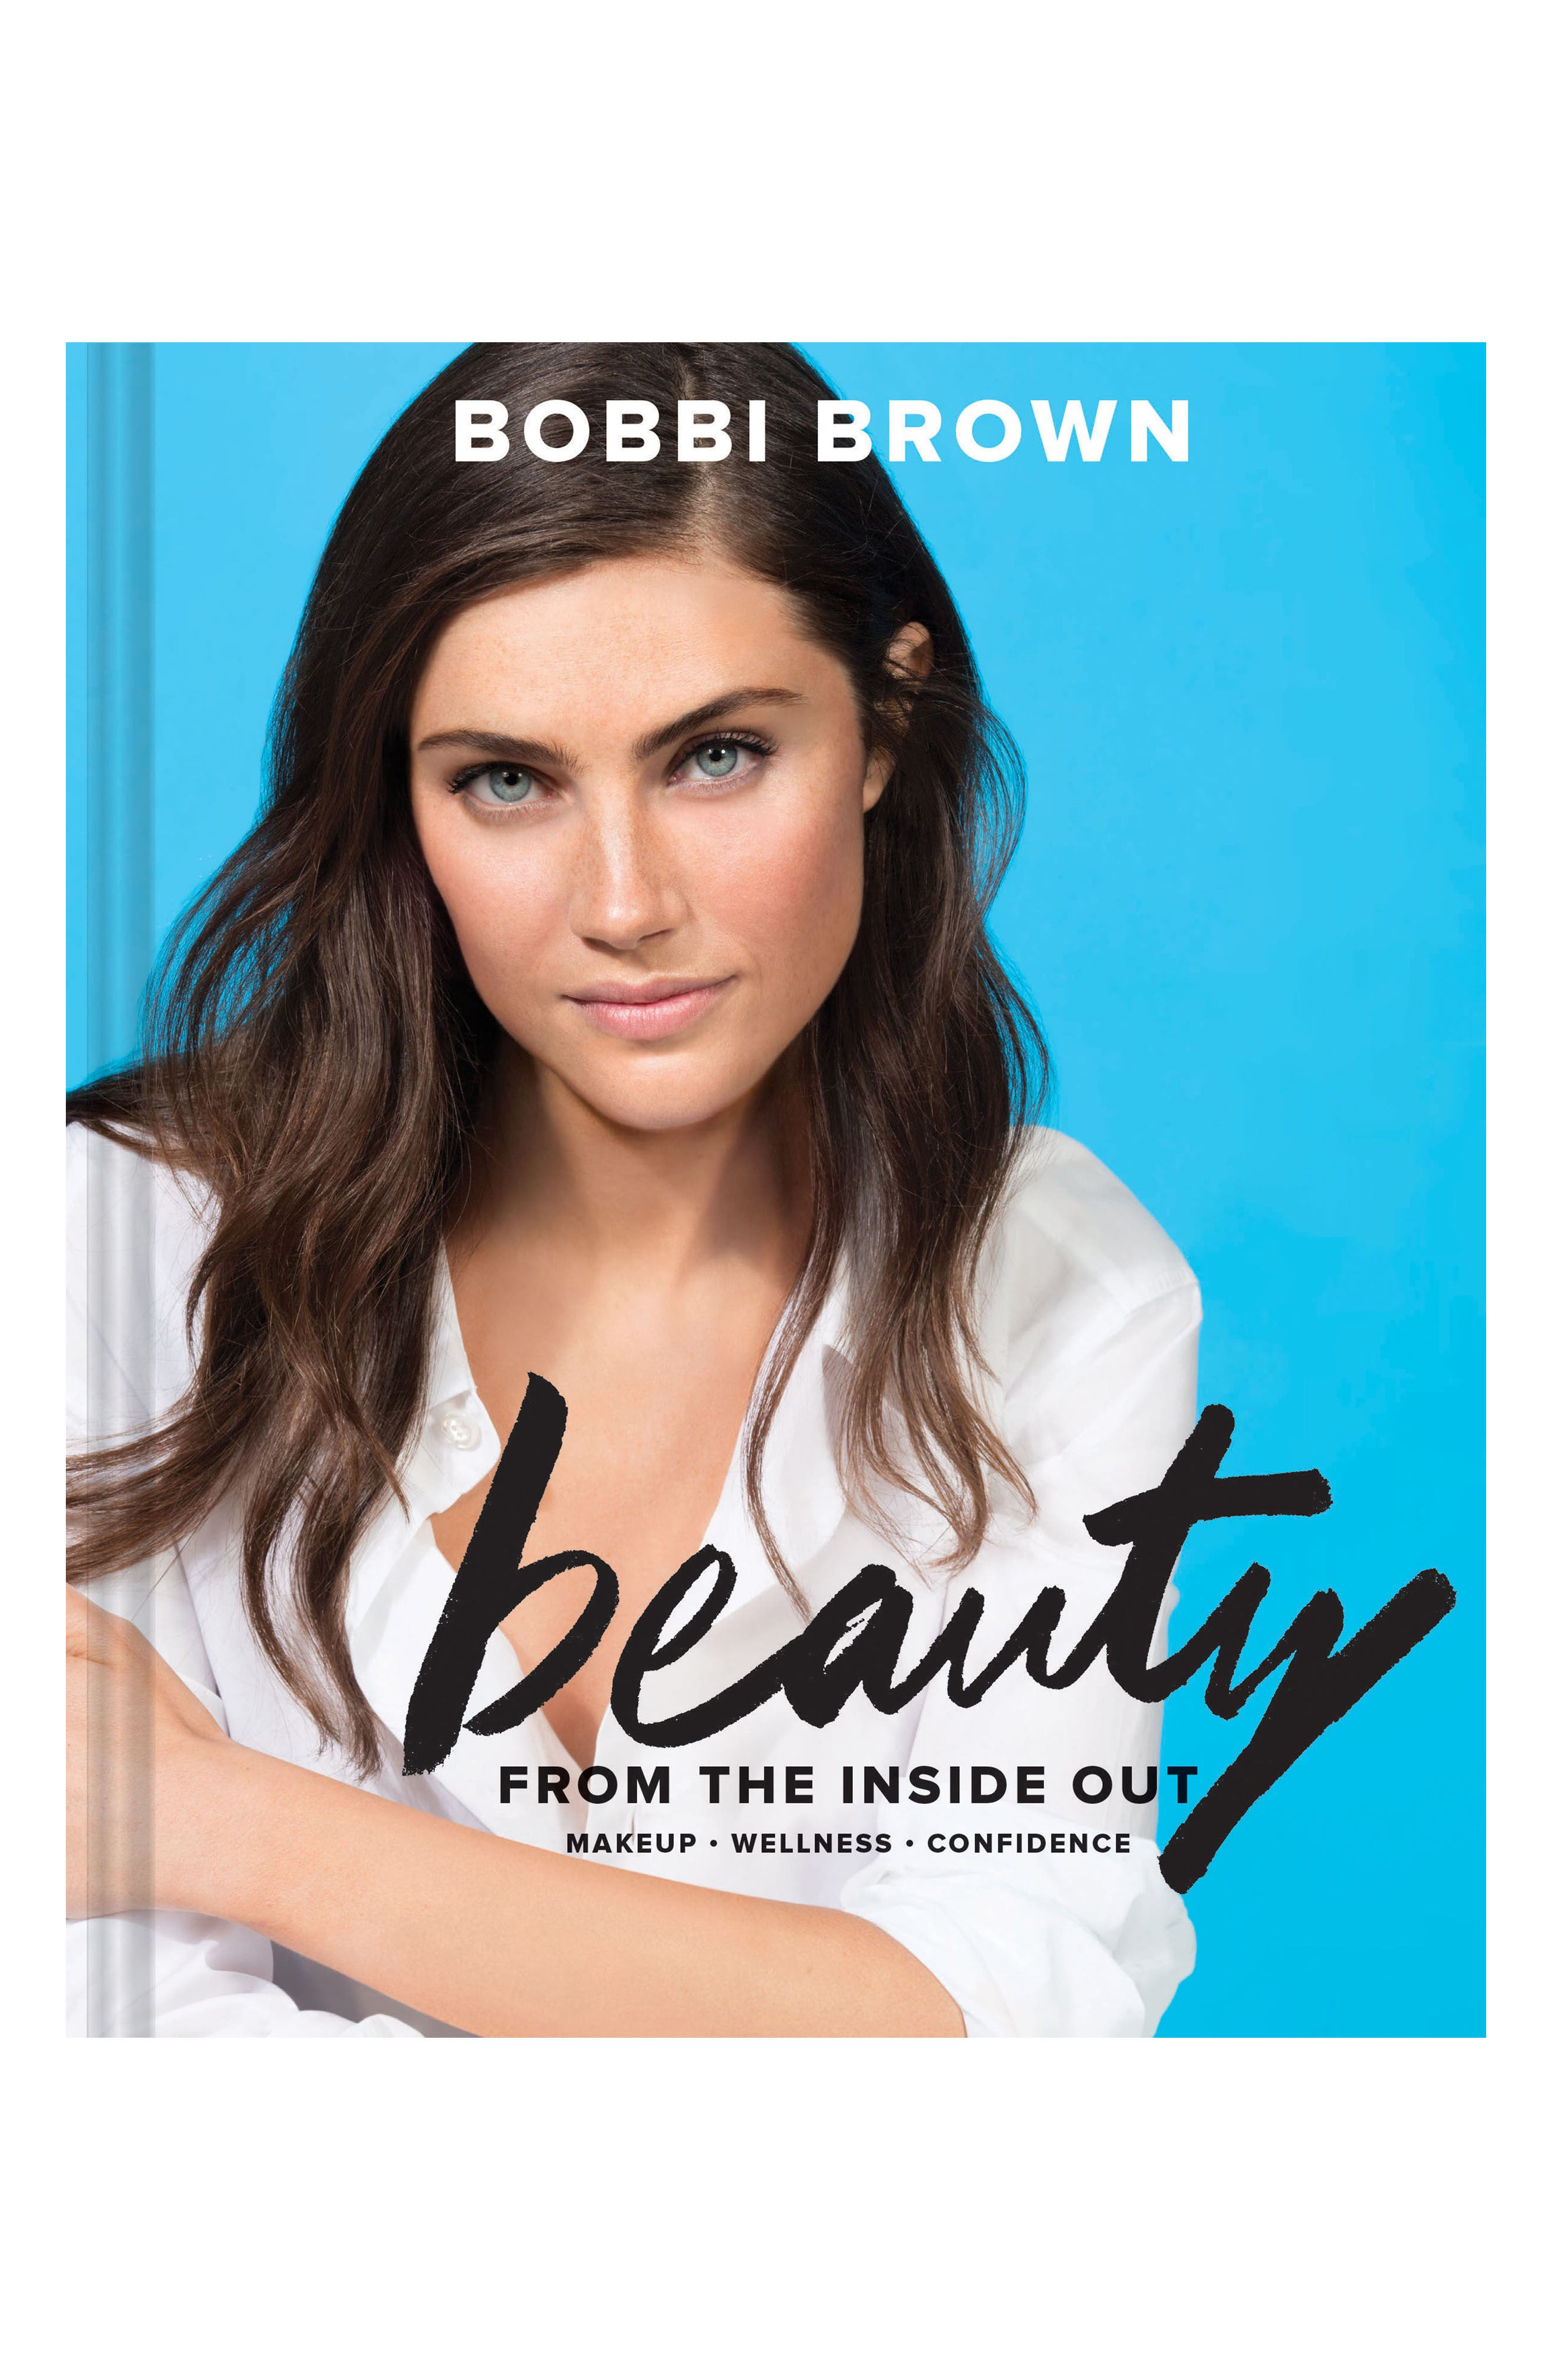 Bobbi Brown's Beauty From the Inside Out Book